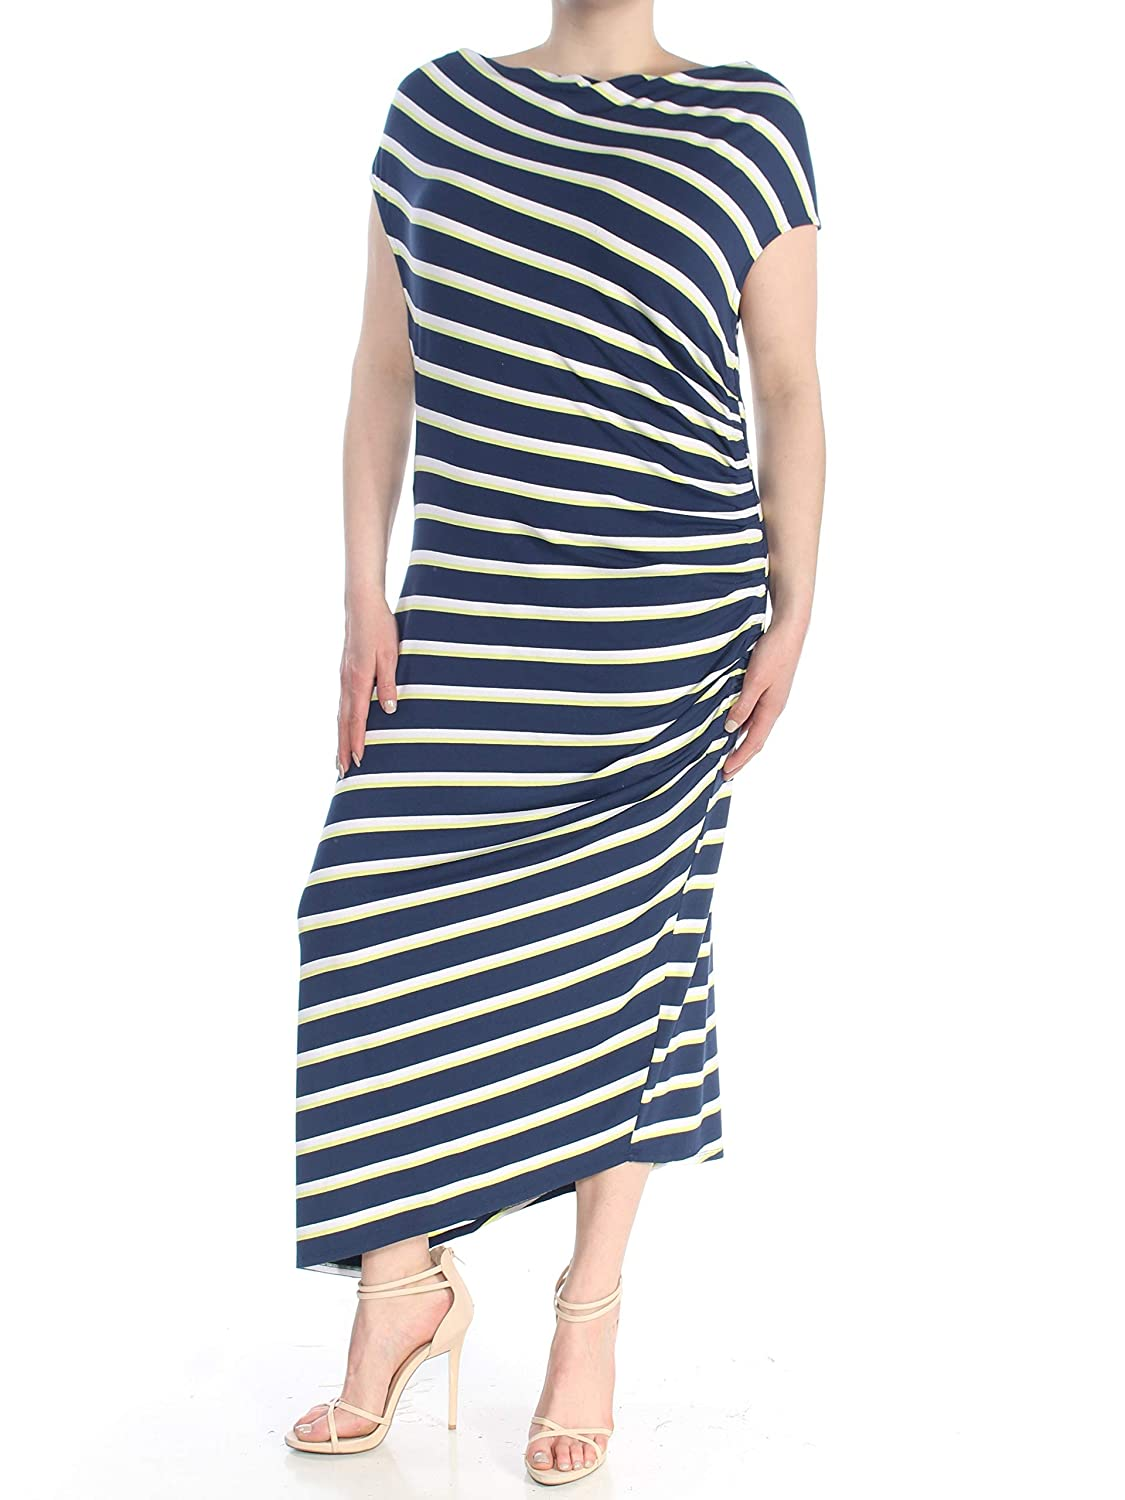 High Tide Stripe Vince Camuto Asymmetrical Midi Dress